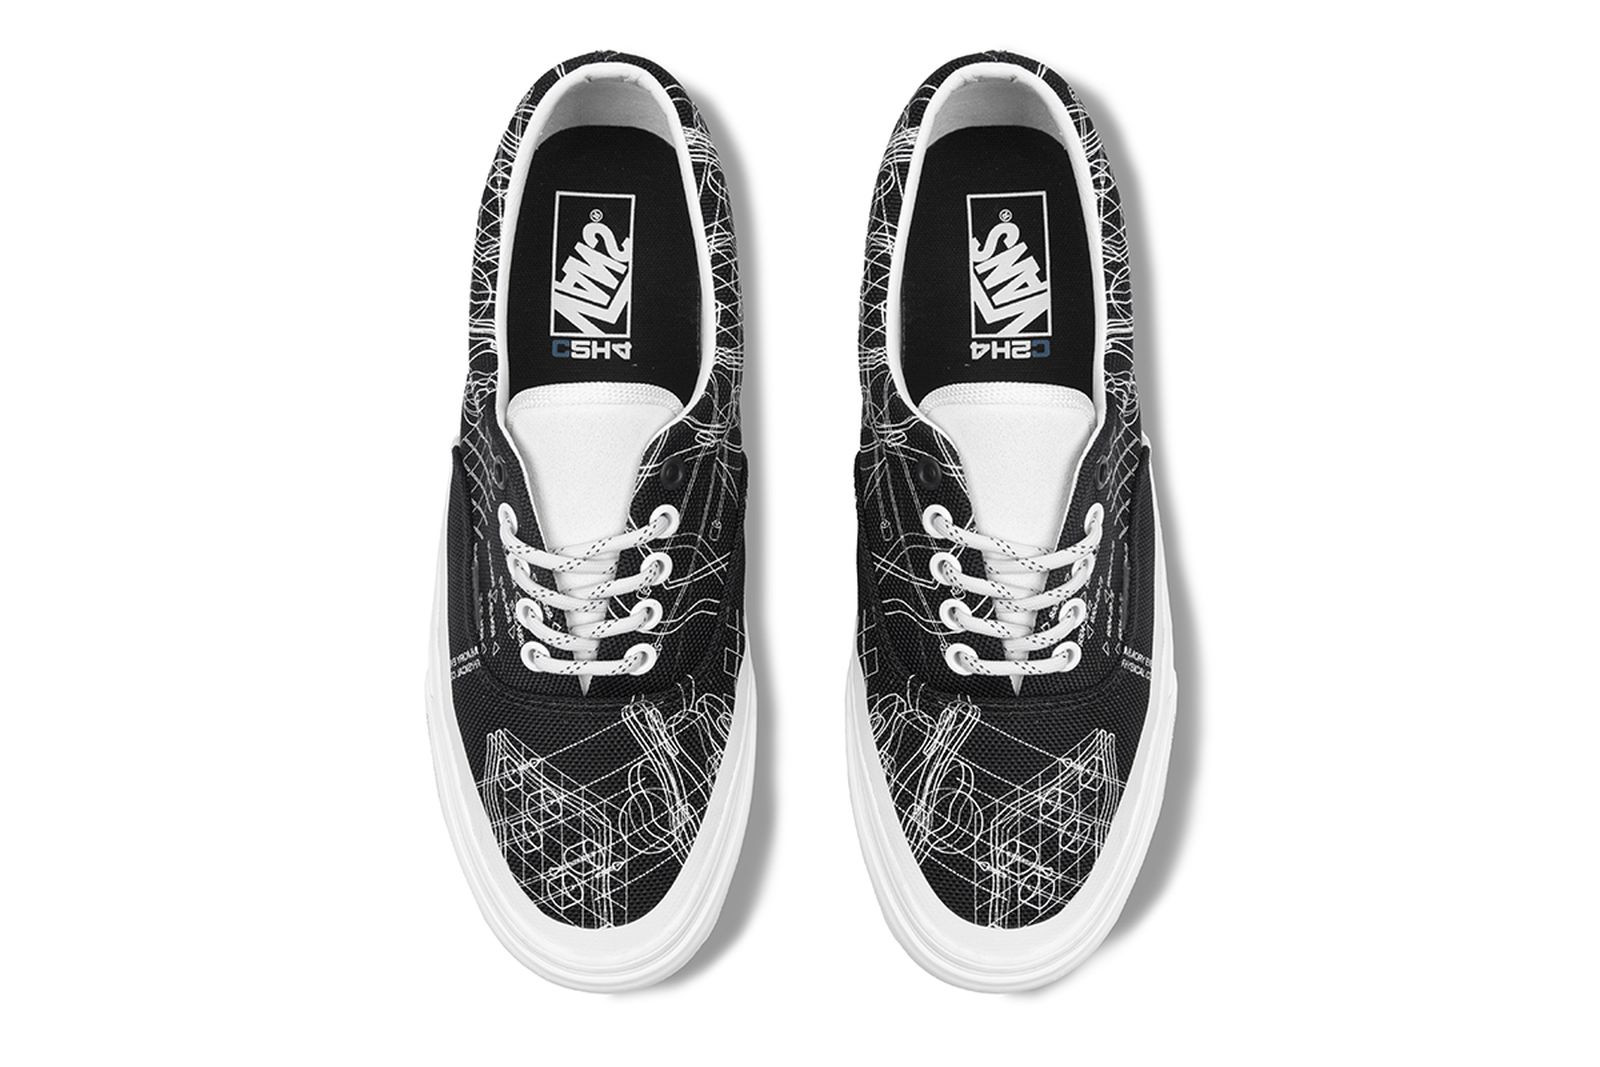 c2h4-vans-the-imagination-of-future-2-release-date-price-1-a-03